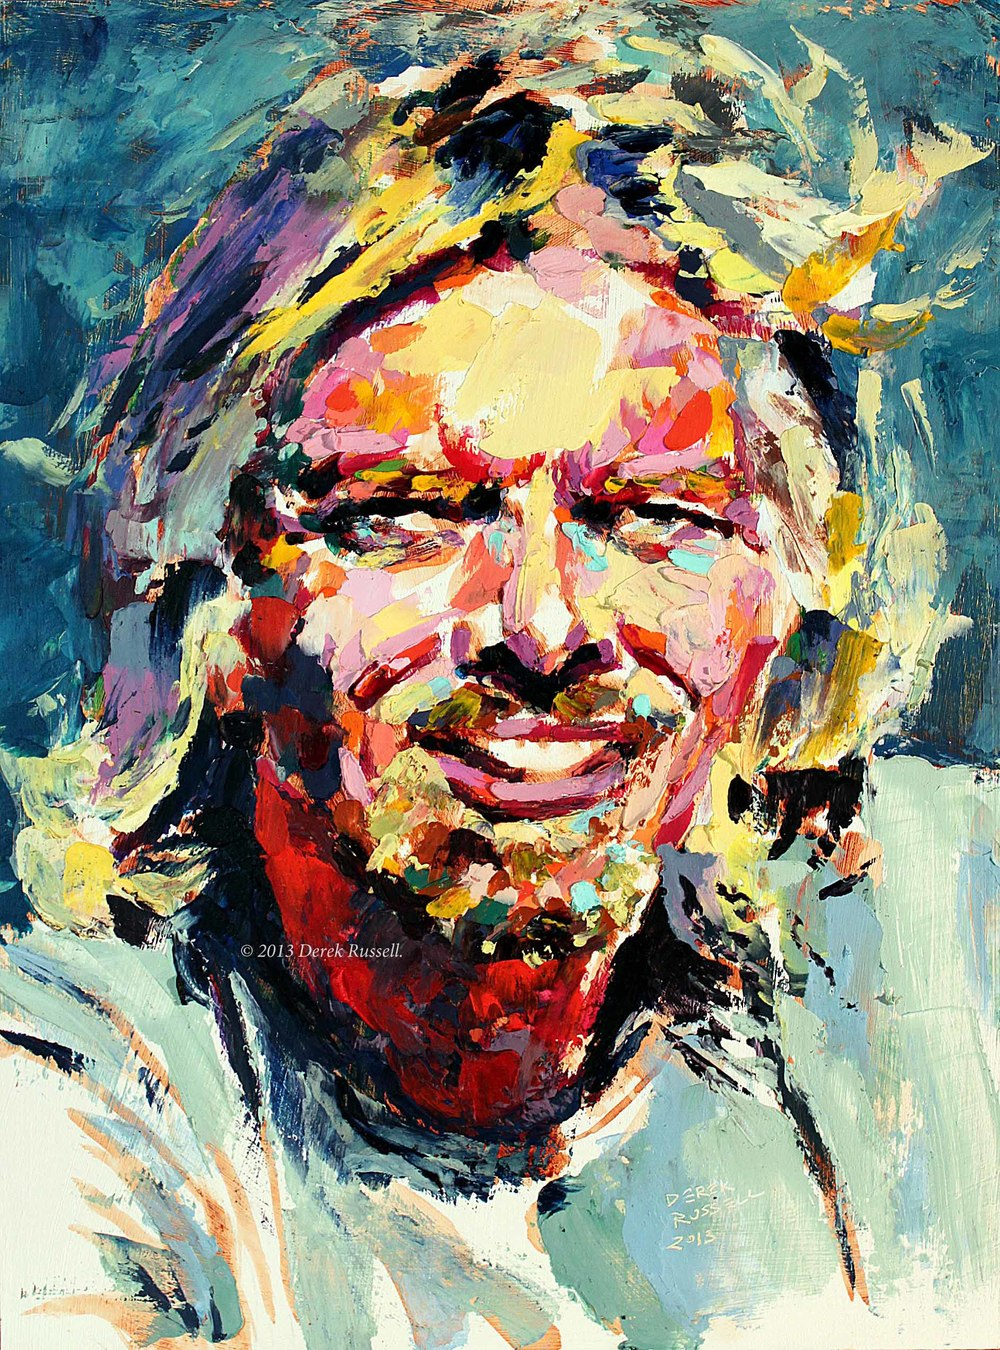 Richard Branson Original Oil Painting by Artist Derek Russell